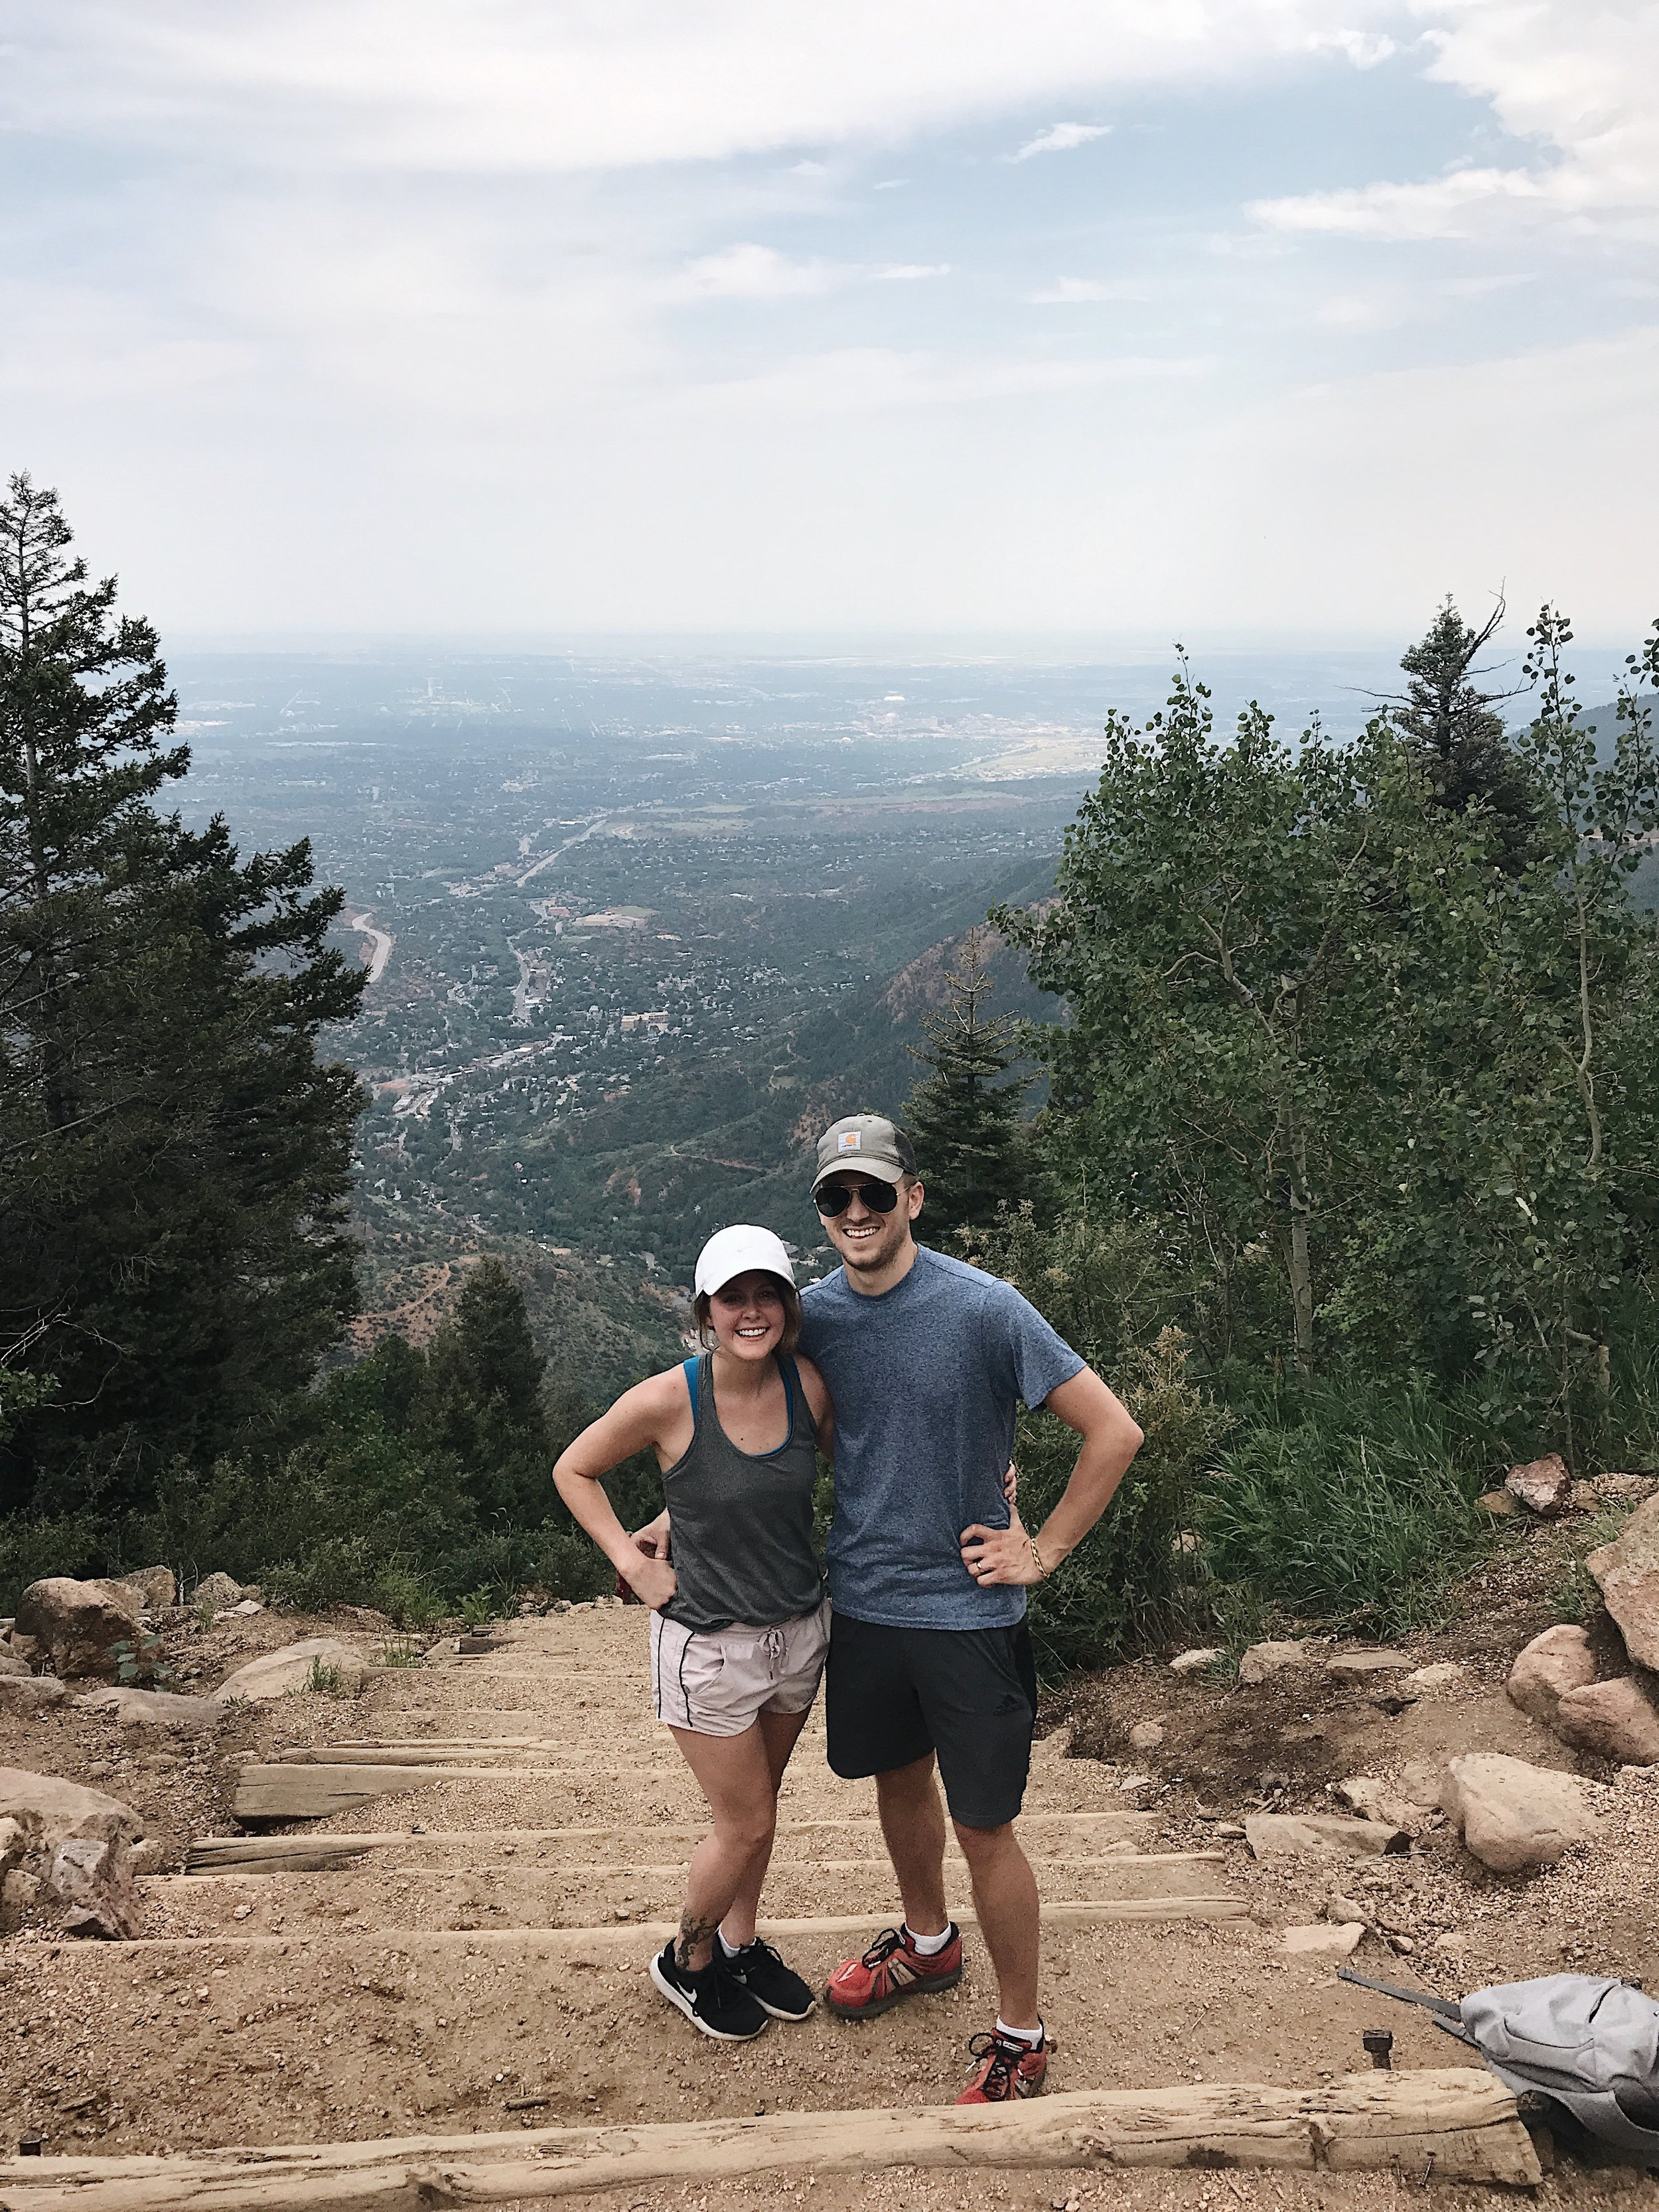 At the top of the incline.